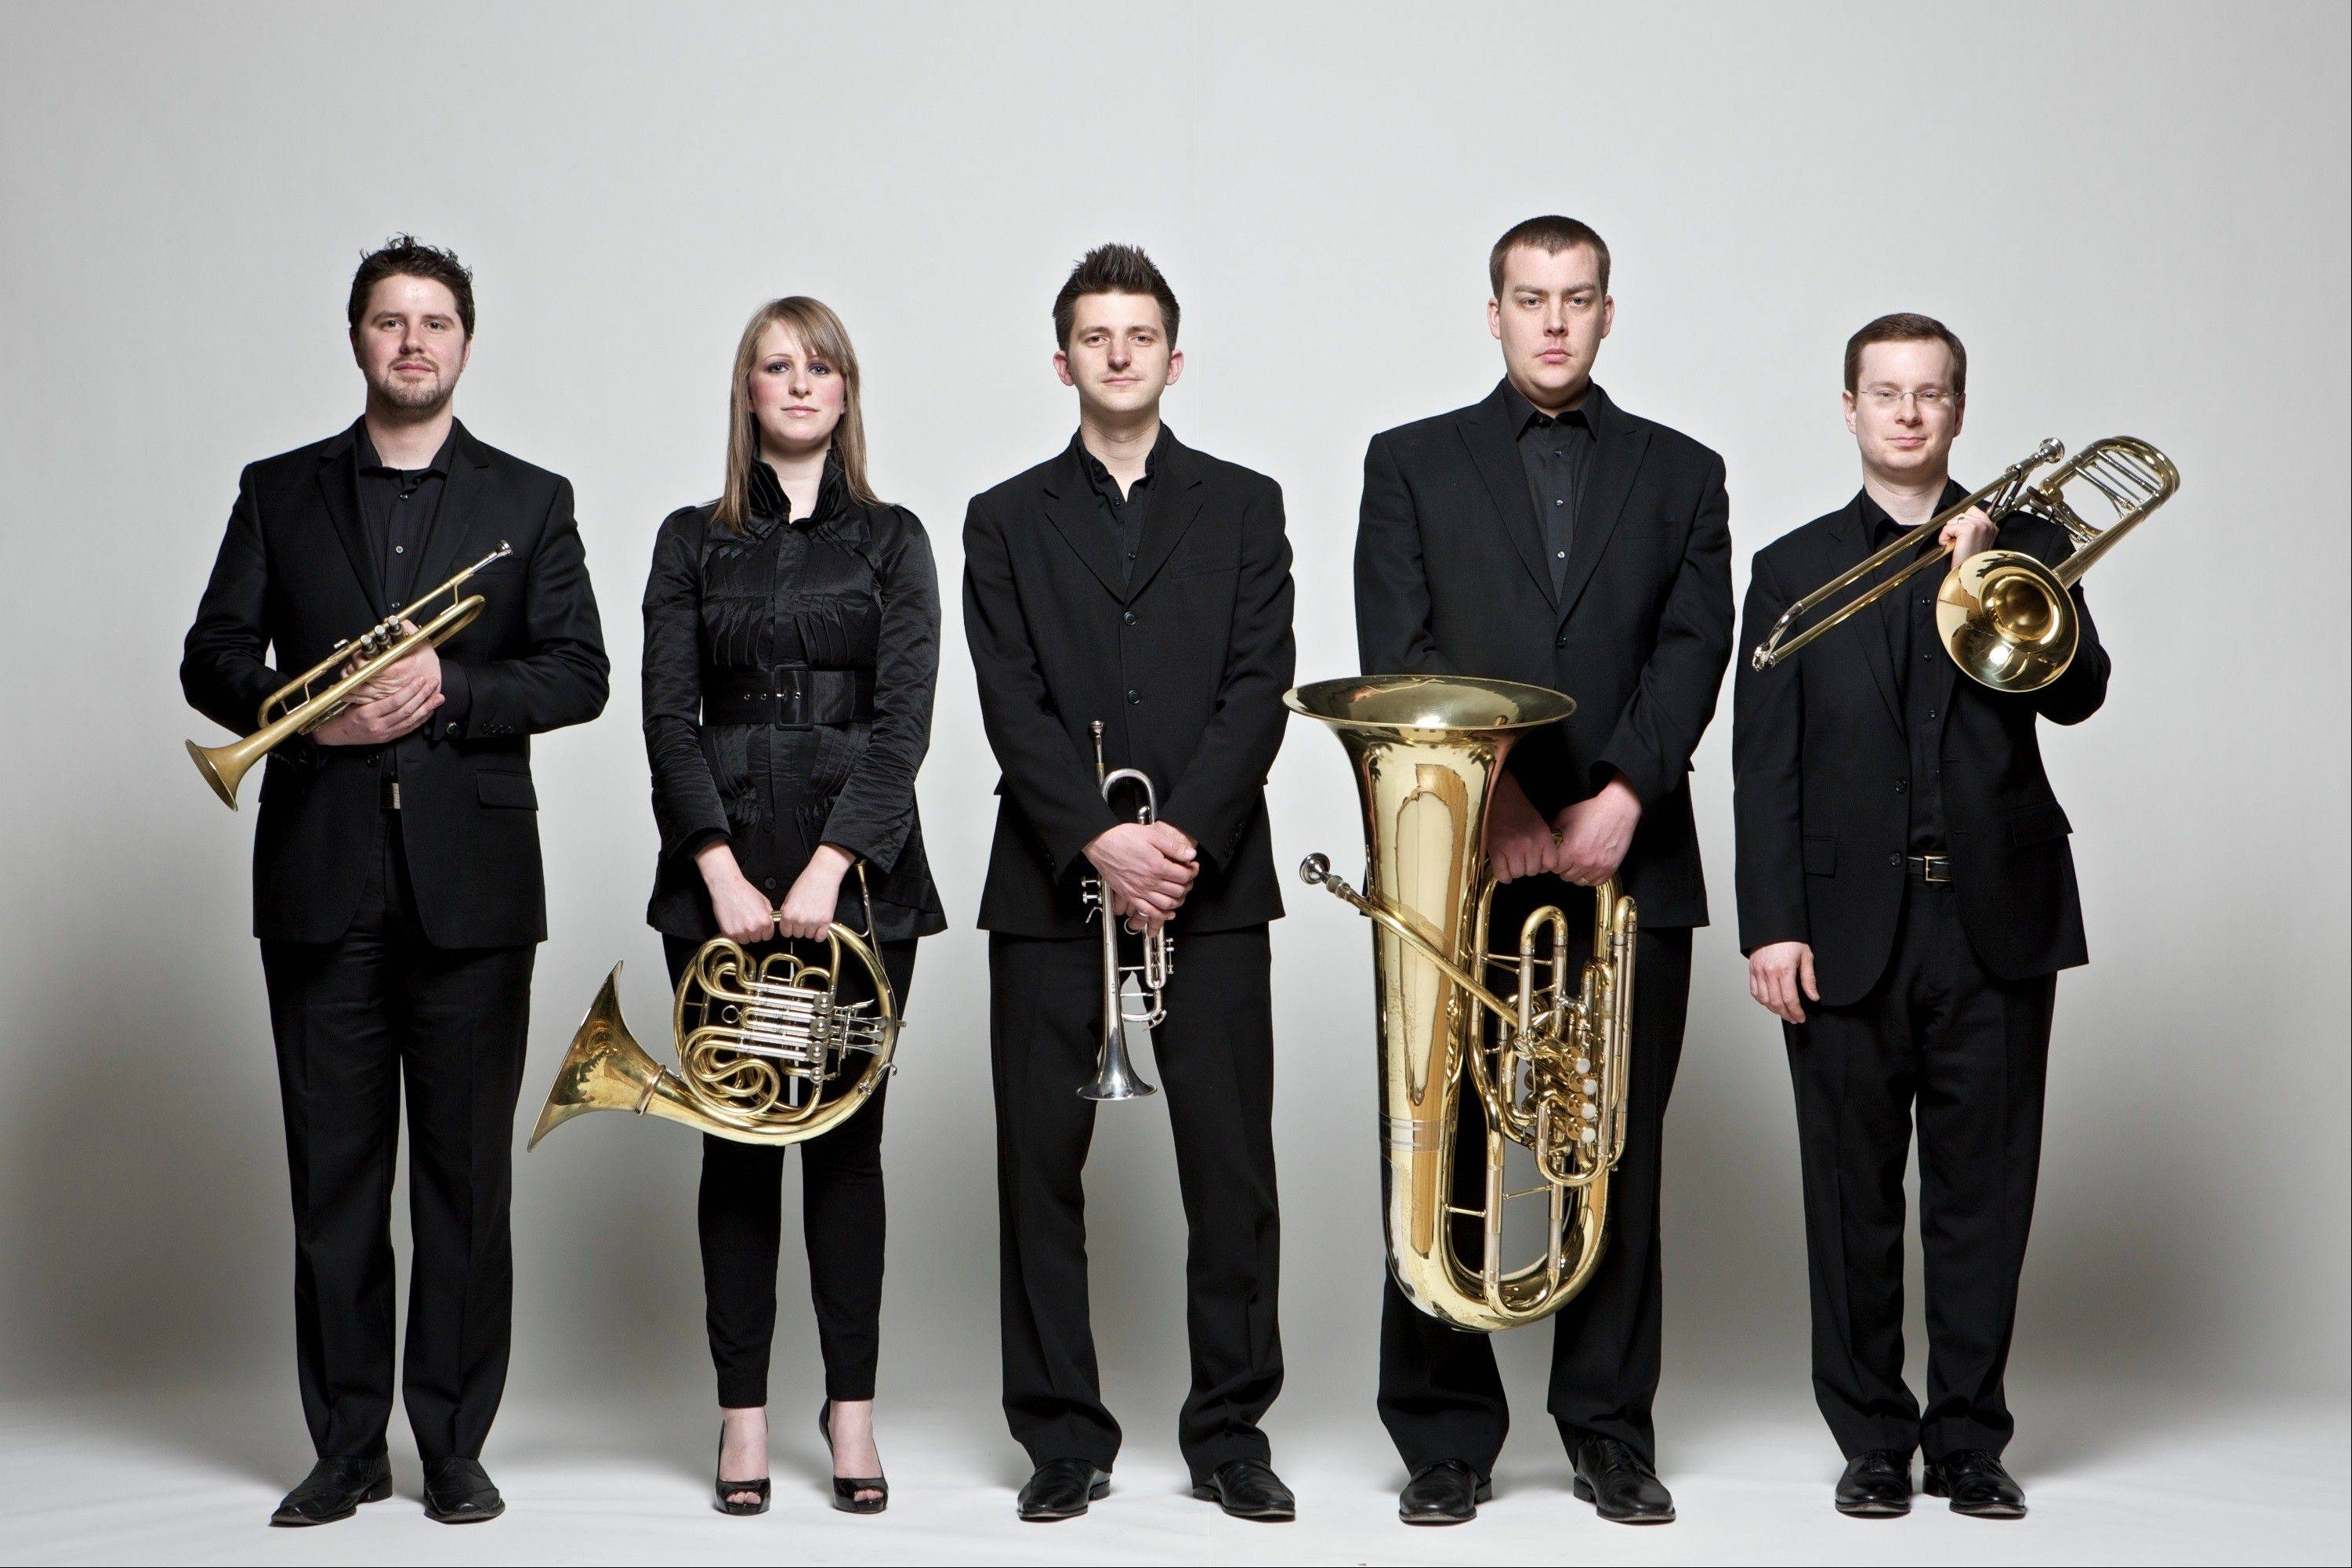 The Gaudete Brass Quintet presents an afternoon concert of brass chamber music on Sunday, Dec. 16, at the Byron Colby Barn at Prairie Crossing in Grayslake.